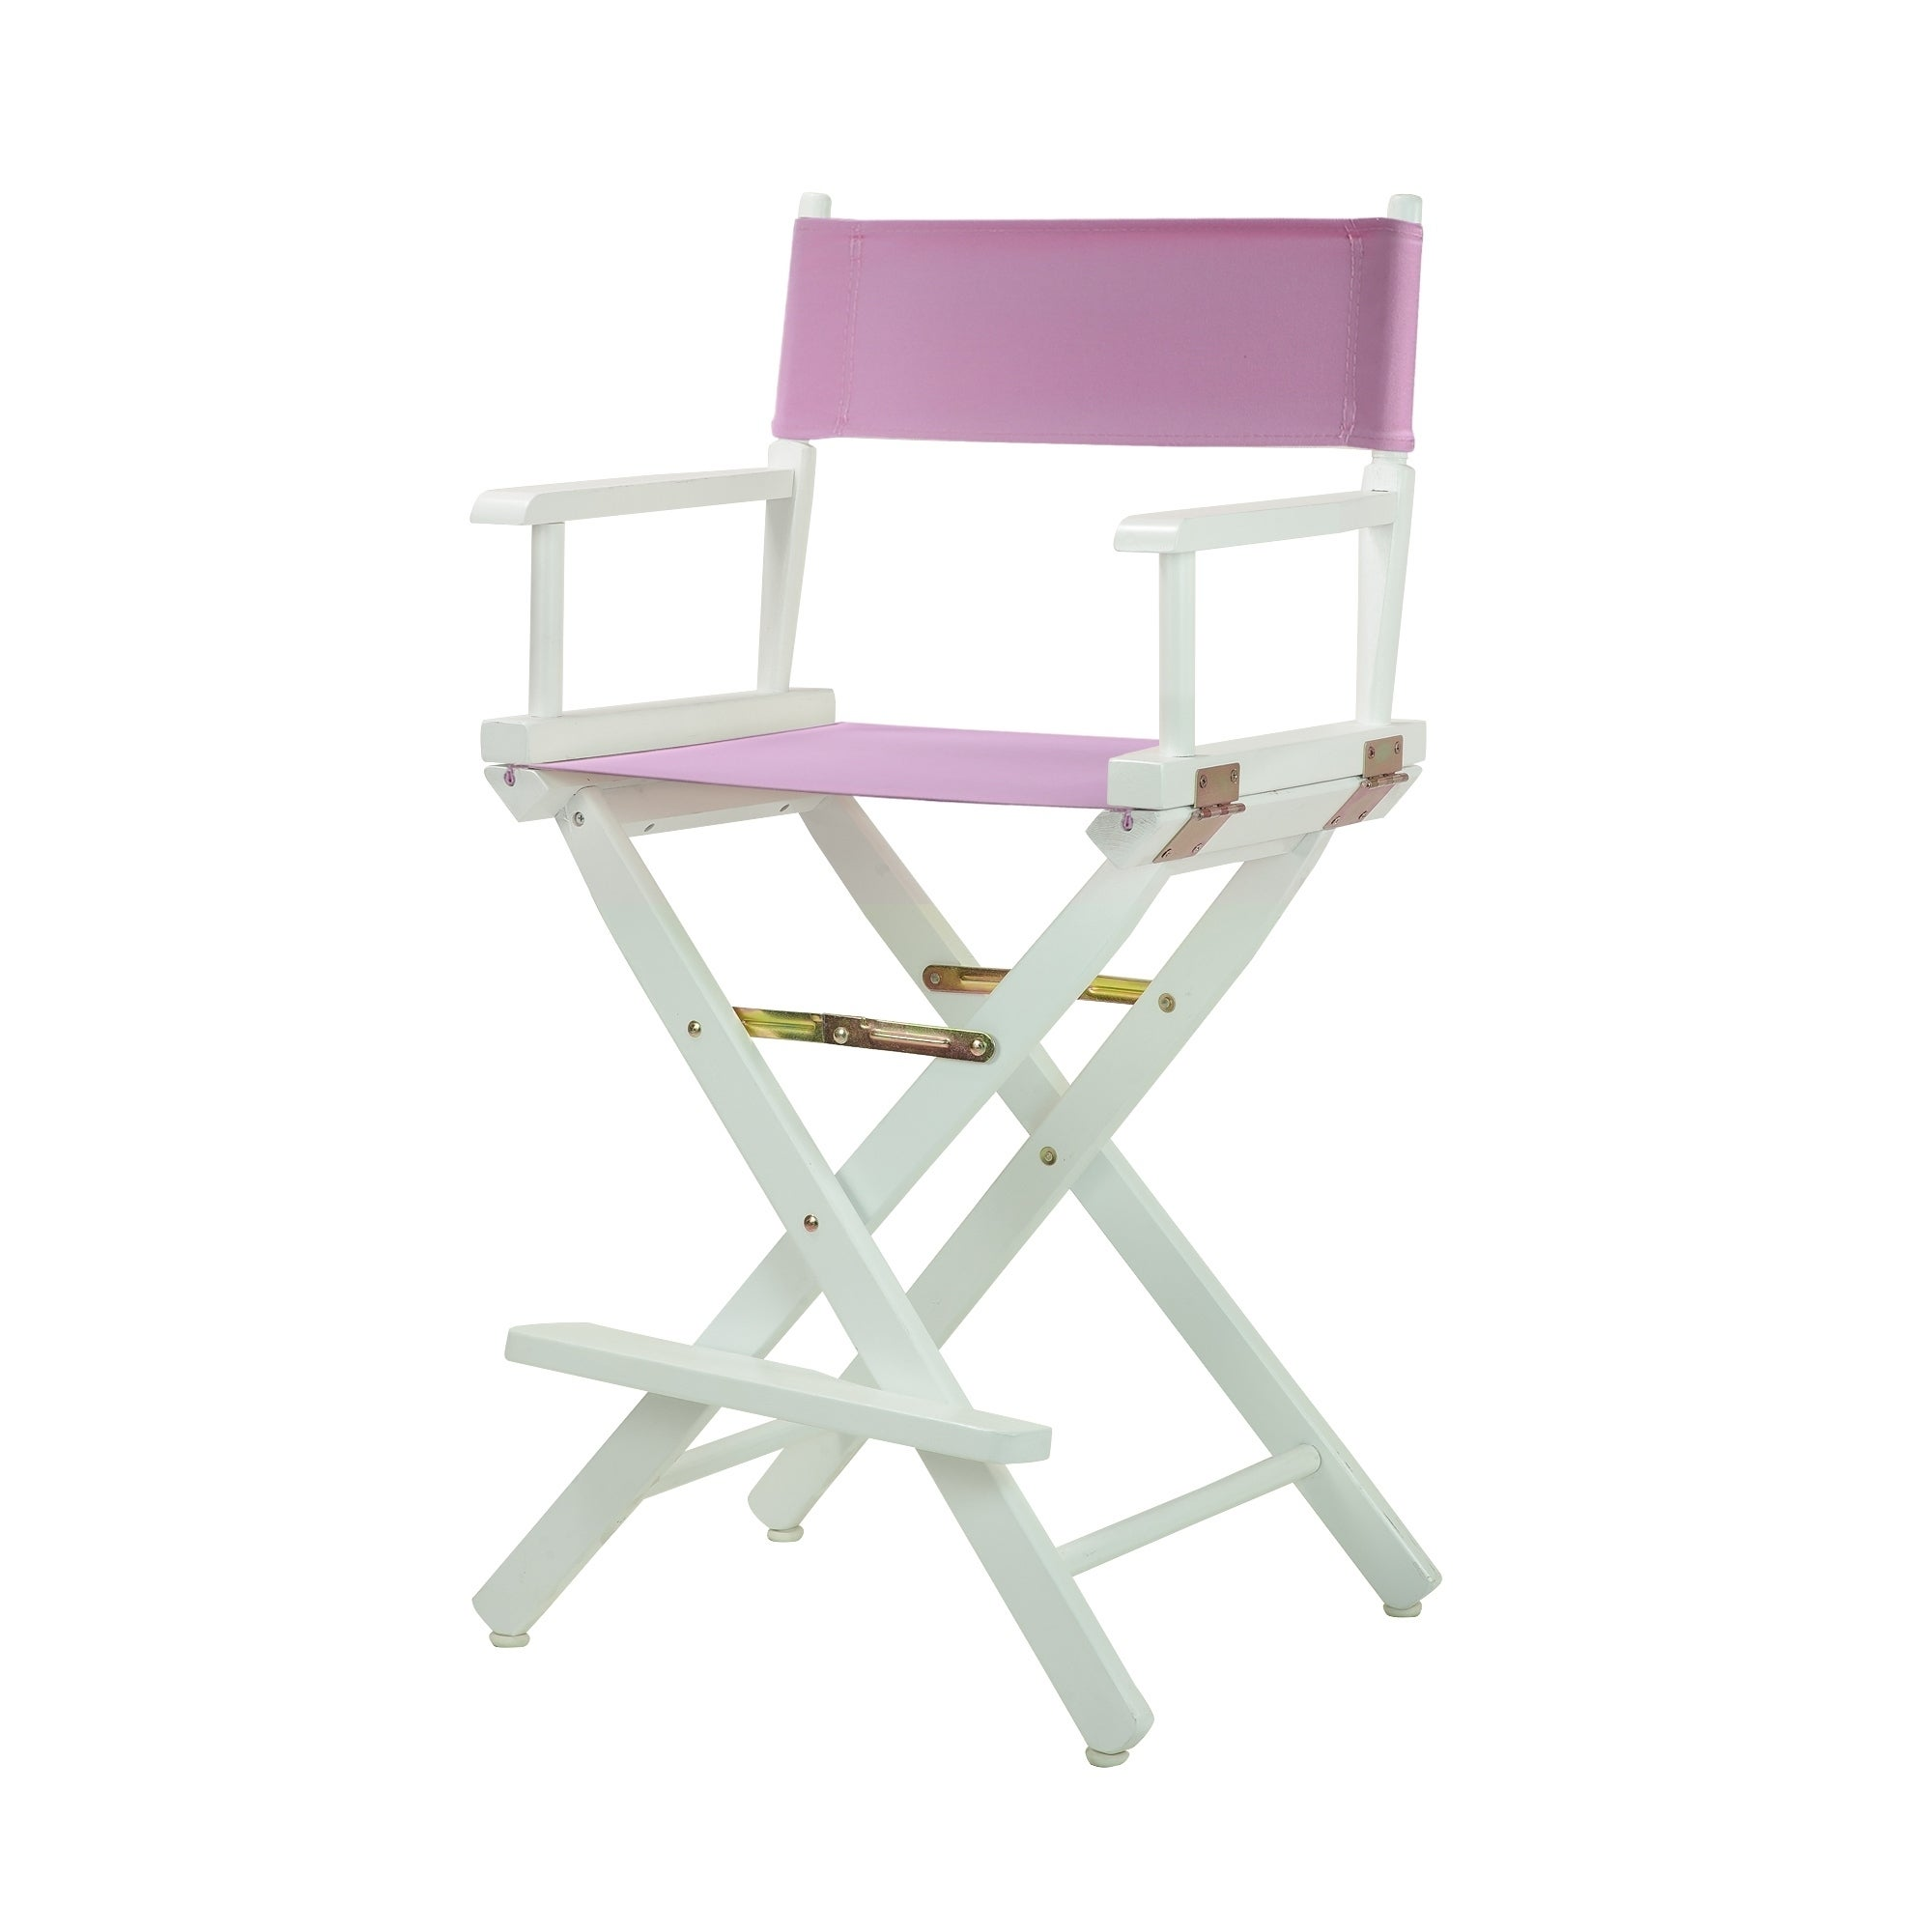 Shop White Frame 24 Inch Directoru0027s Chair   Free Shipping Today    Overstock.com   13223913